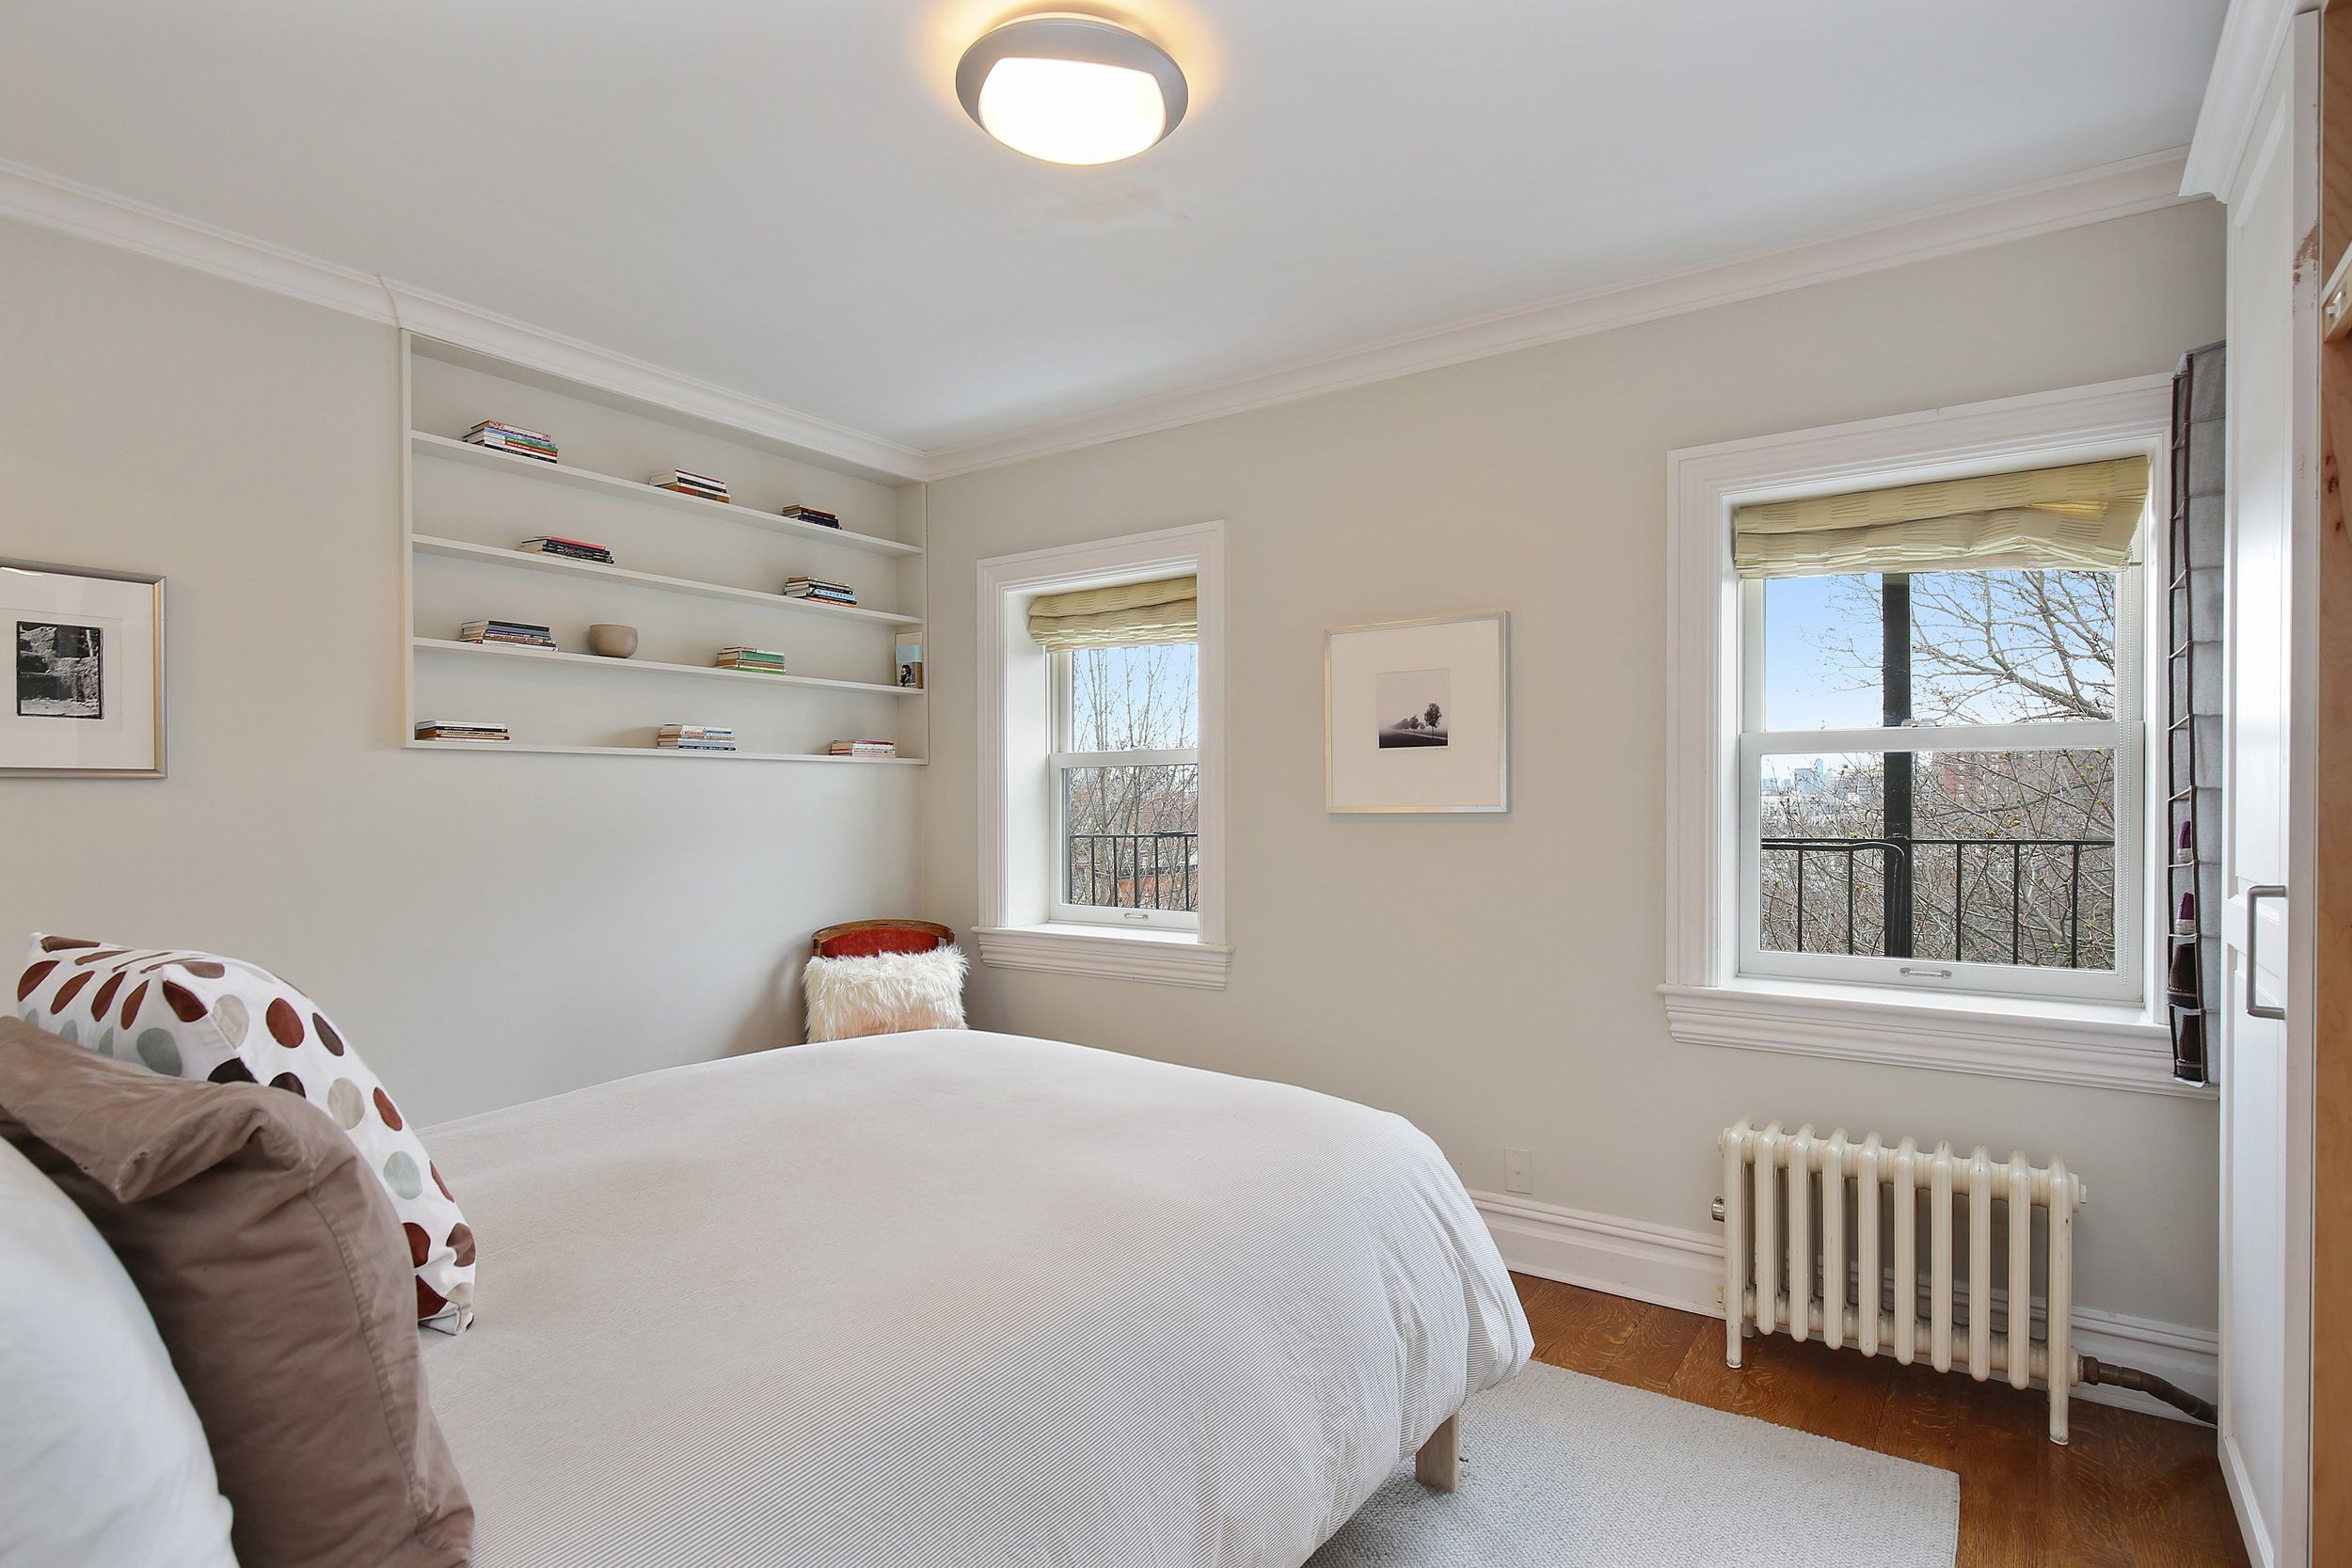 08_217LafayetteAvenue_4_14_MasterBedroom_HiRes.jpg